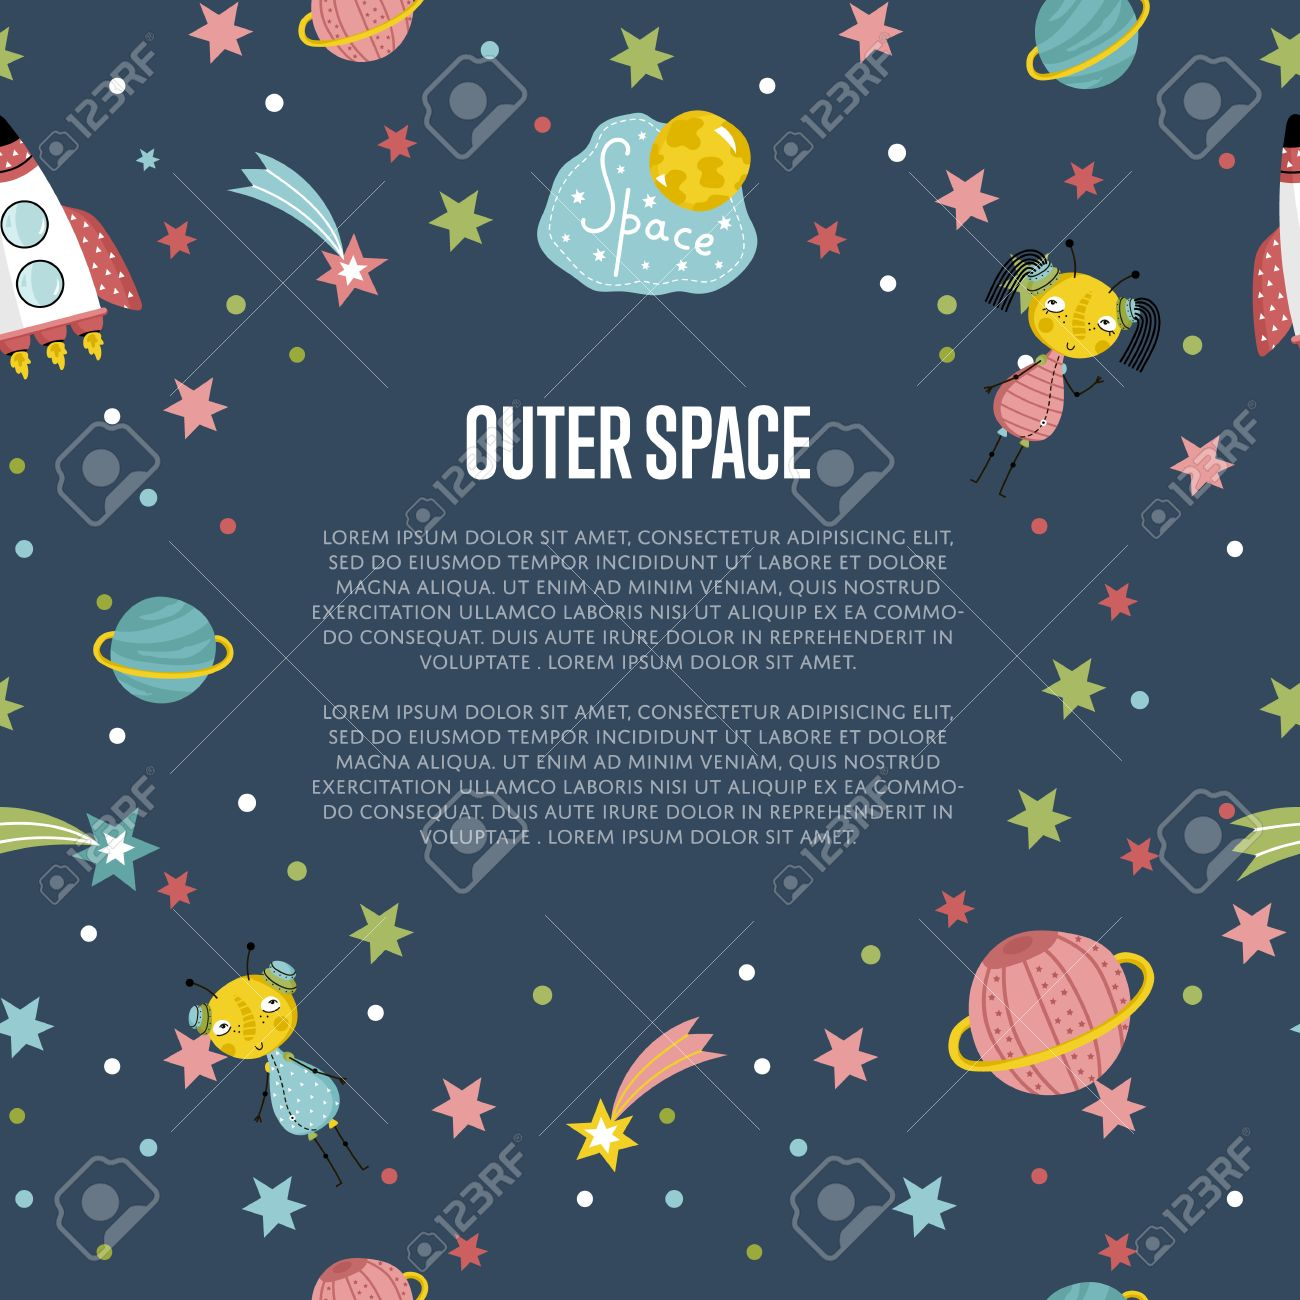 Outer space cartoon banner spaceship cute alien girl and boy outer space cartoon banner spaceship cute alien girl and boy stars comet voltagebd Image collections